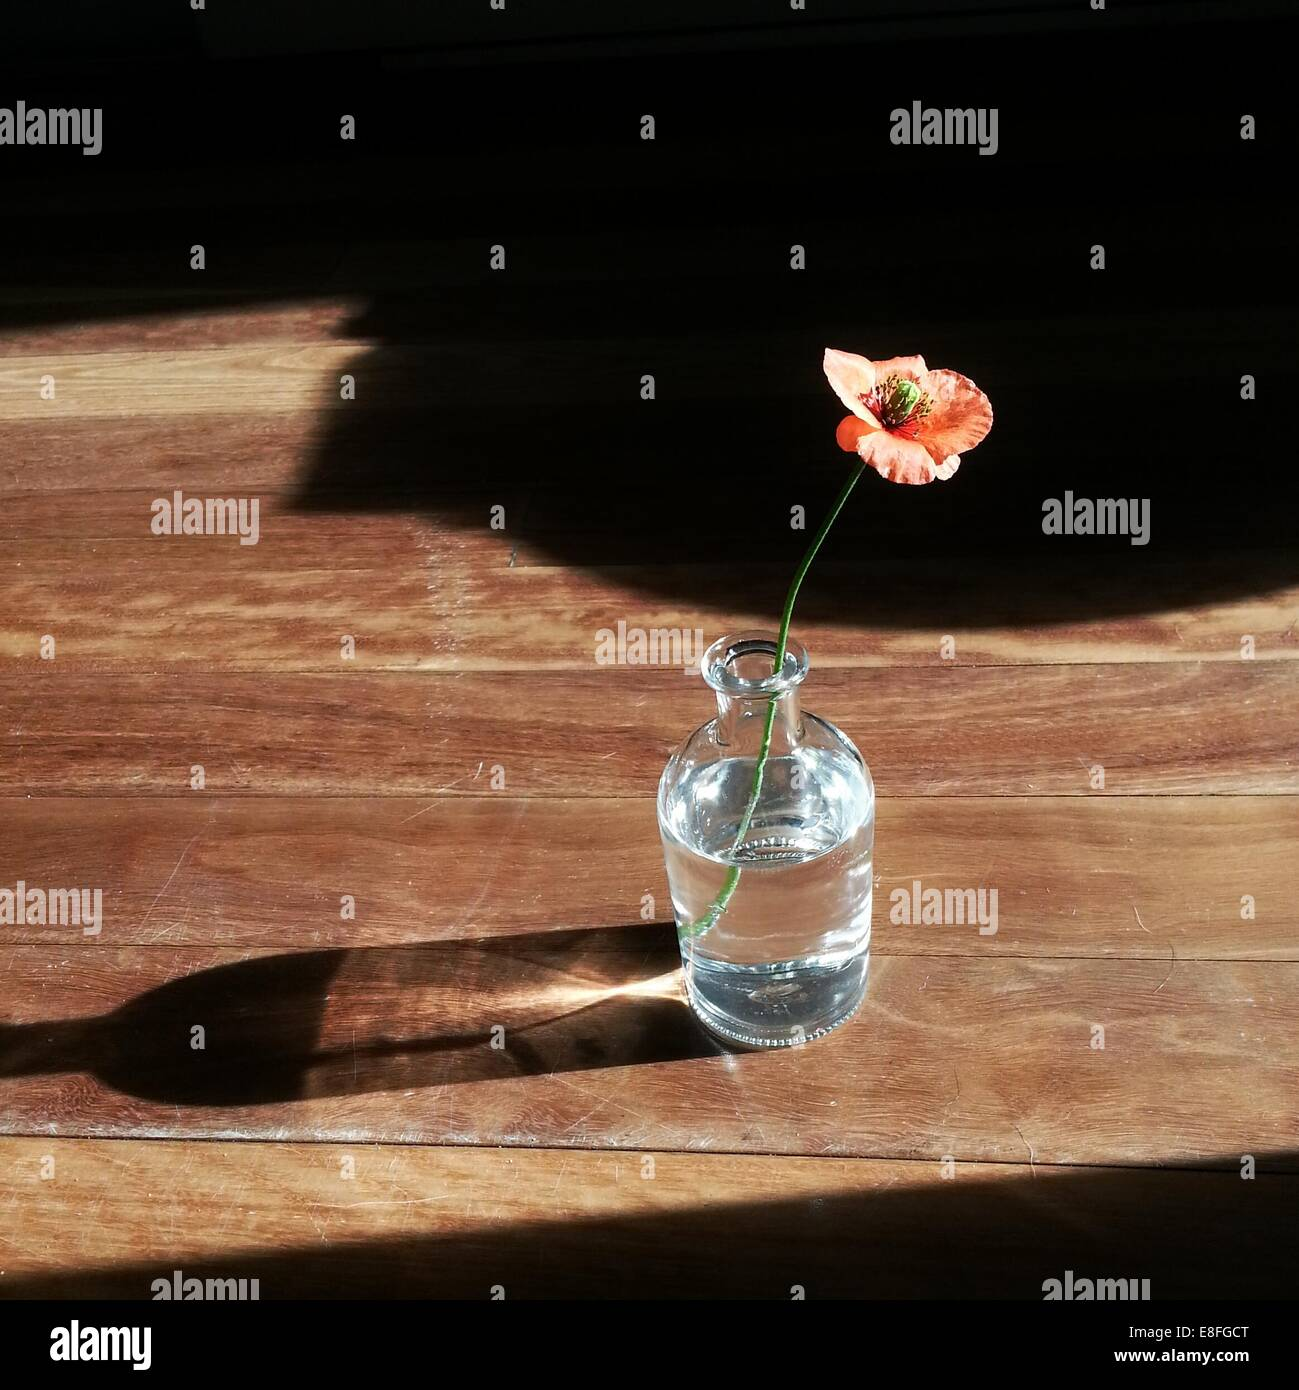 Poppy flower in a vase on wooden table - Stock Image